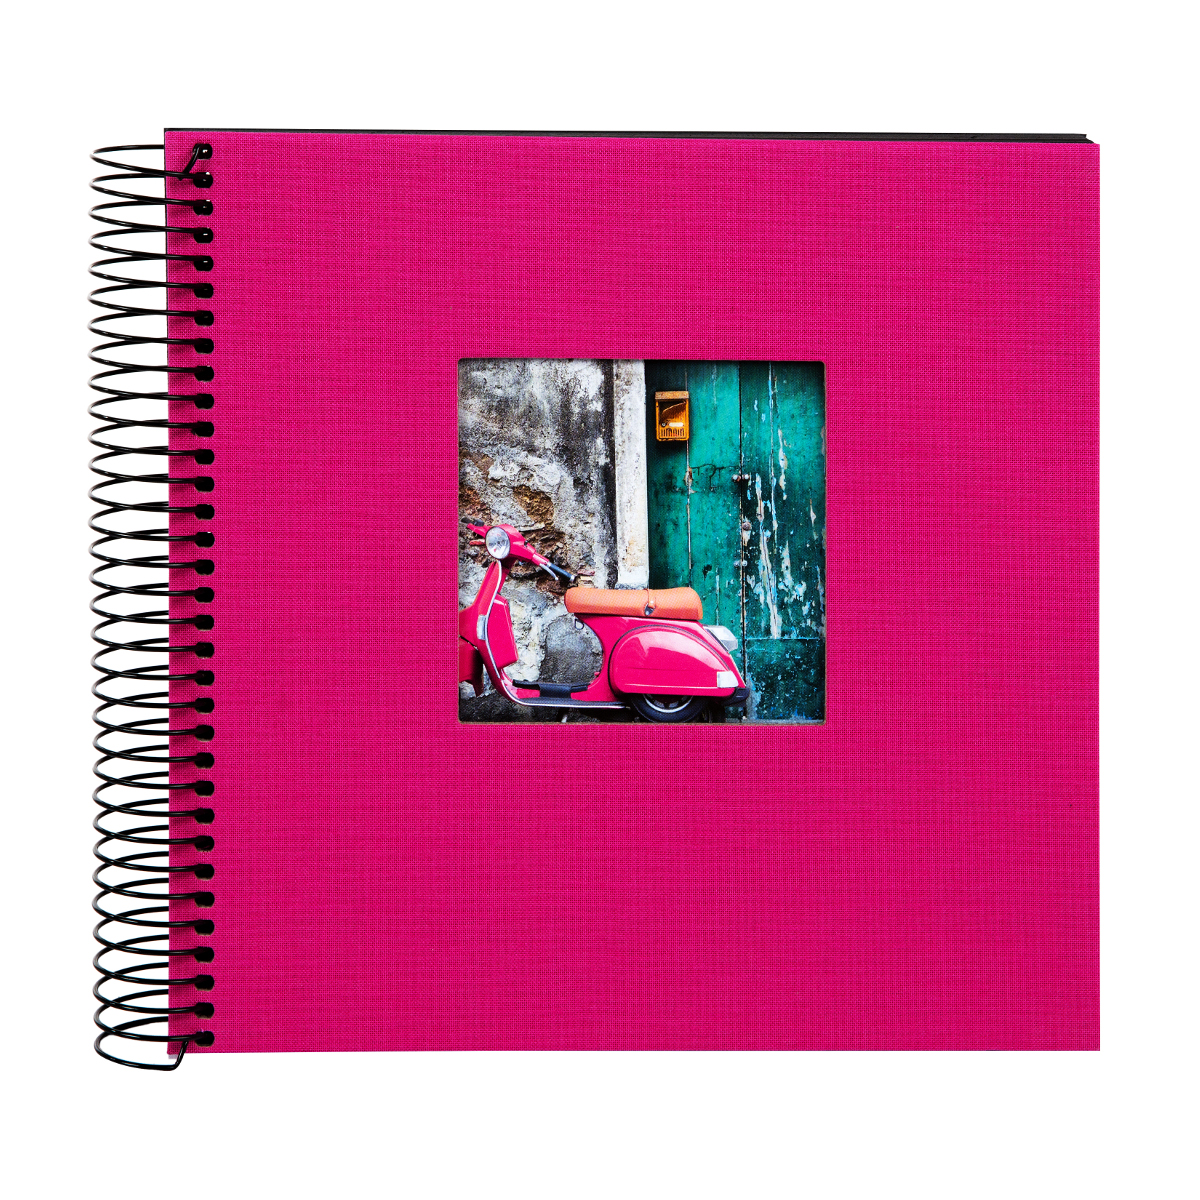 goldbuch Spiralalbum Bella Vista pink mini 1